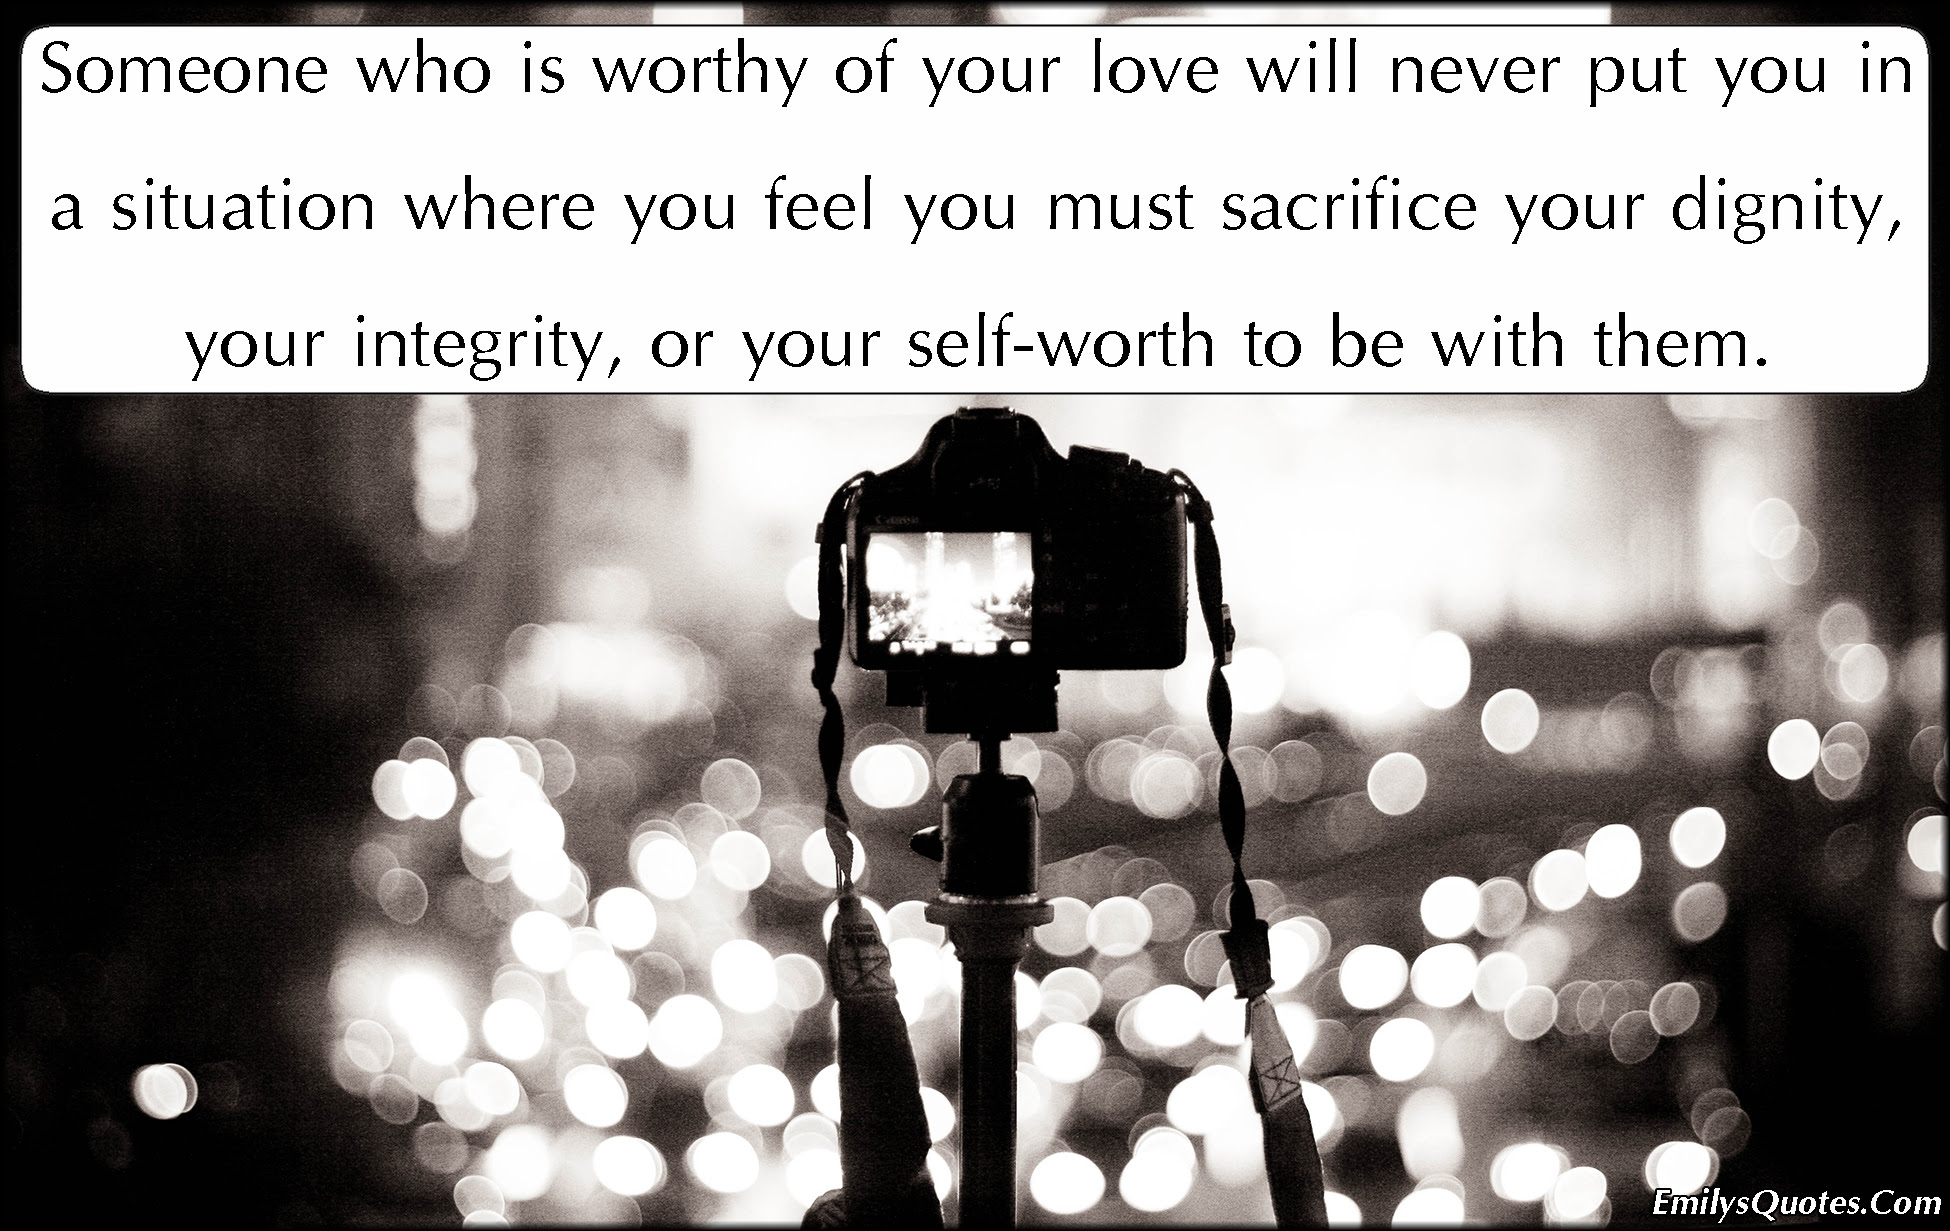 worthy love feelings sacrifice dignity integrity